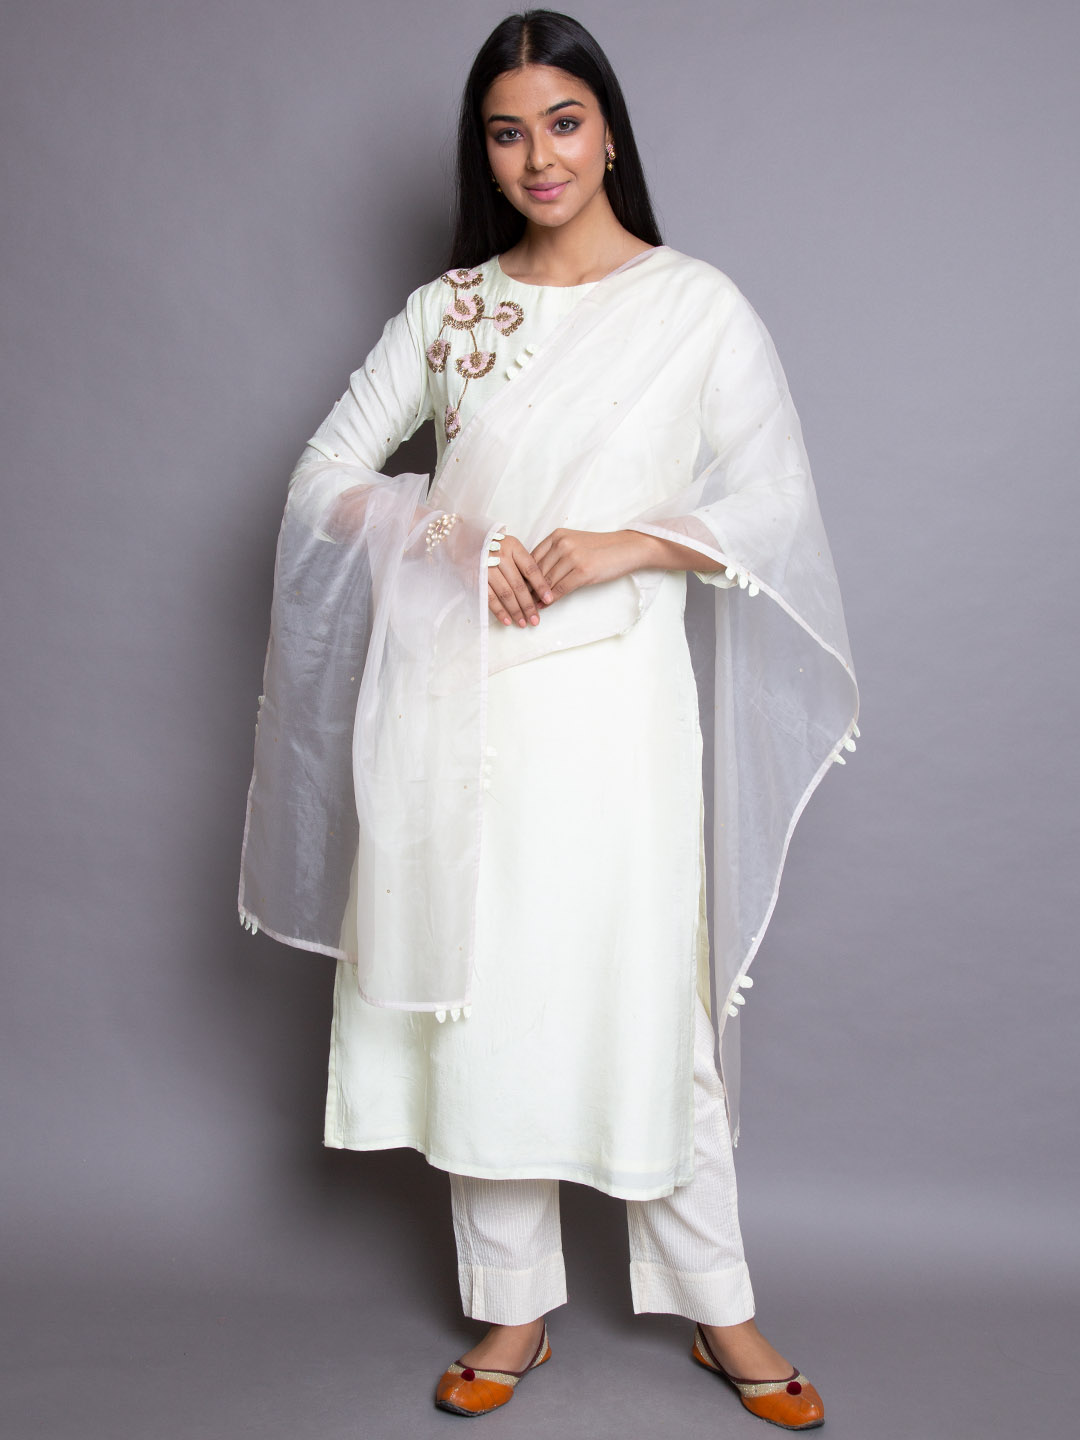 Creamish Embroidery suit